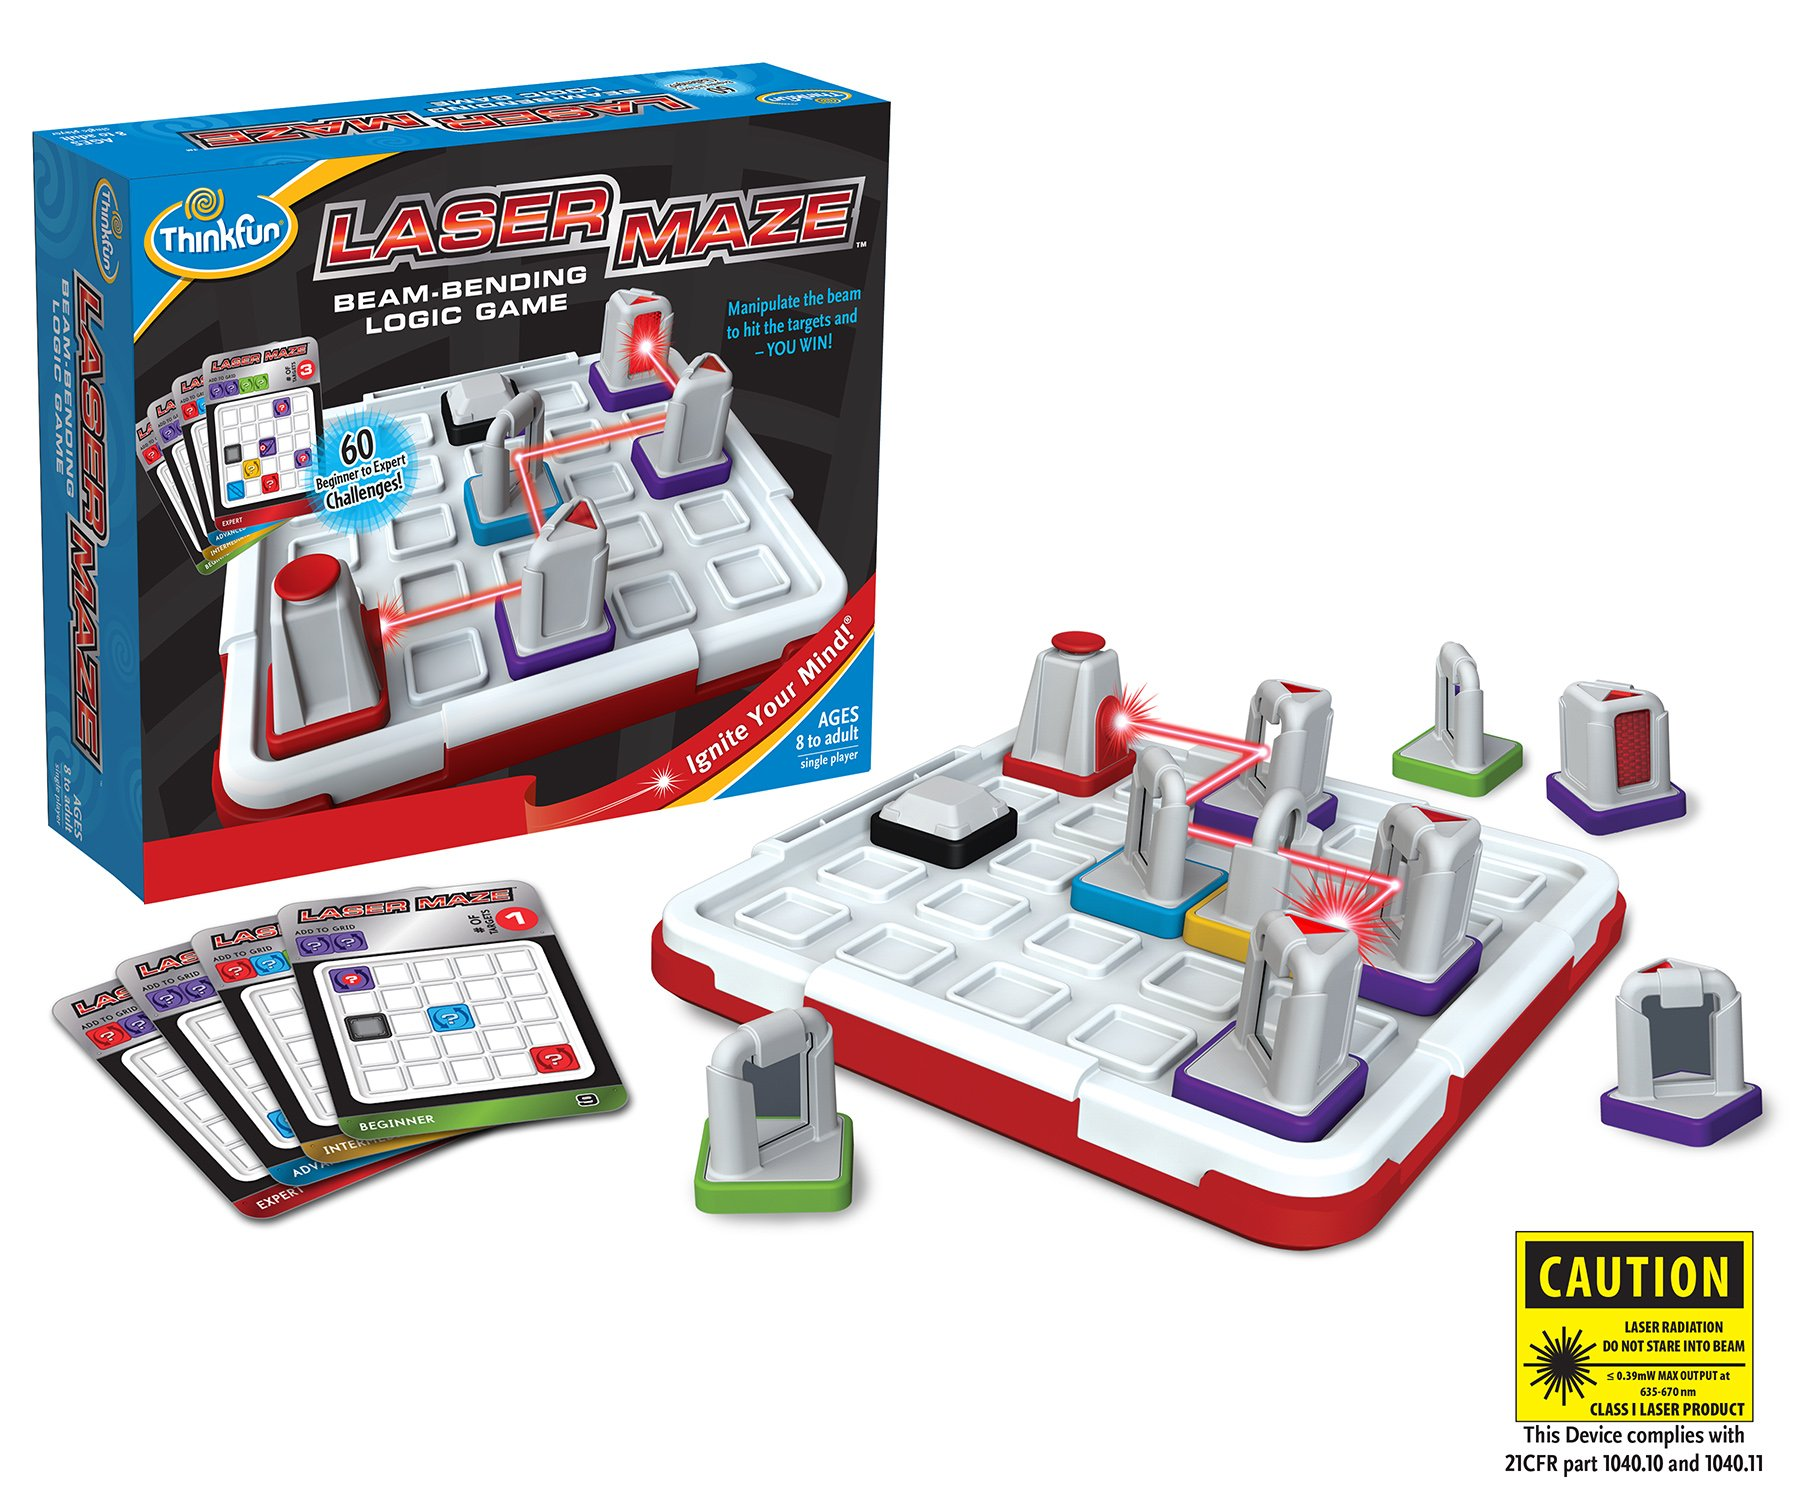 ThinkFun Laser Maze (Class 1) Logic Game and STEM Toy for Boys and Girls Age 8 and Up - Award Winning Game for Kids by Think Fun